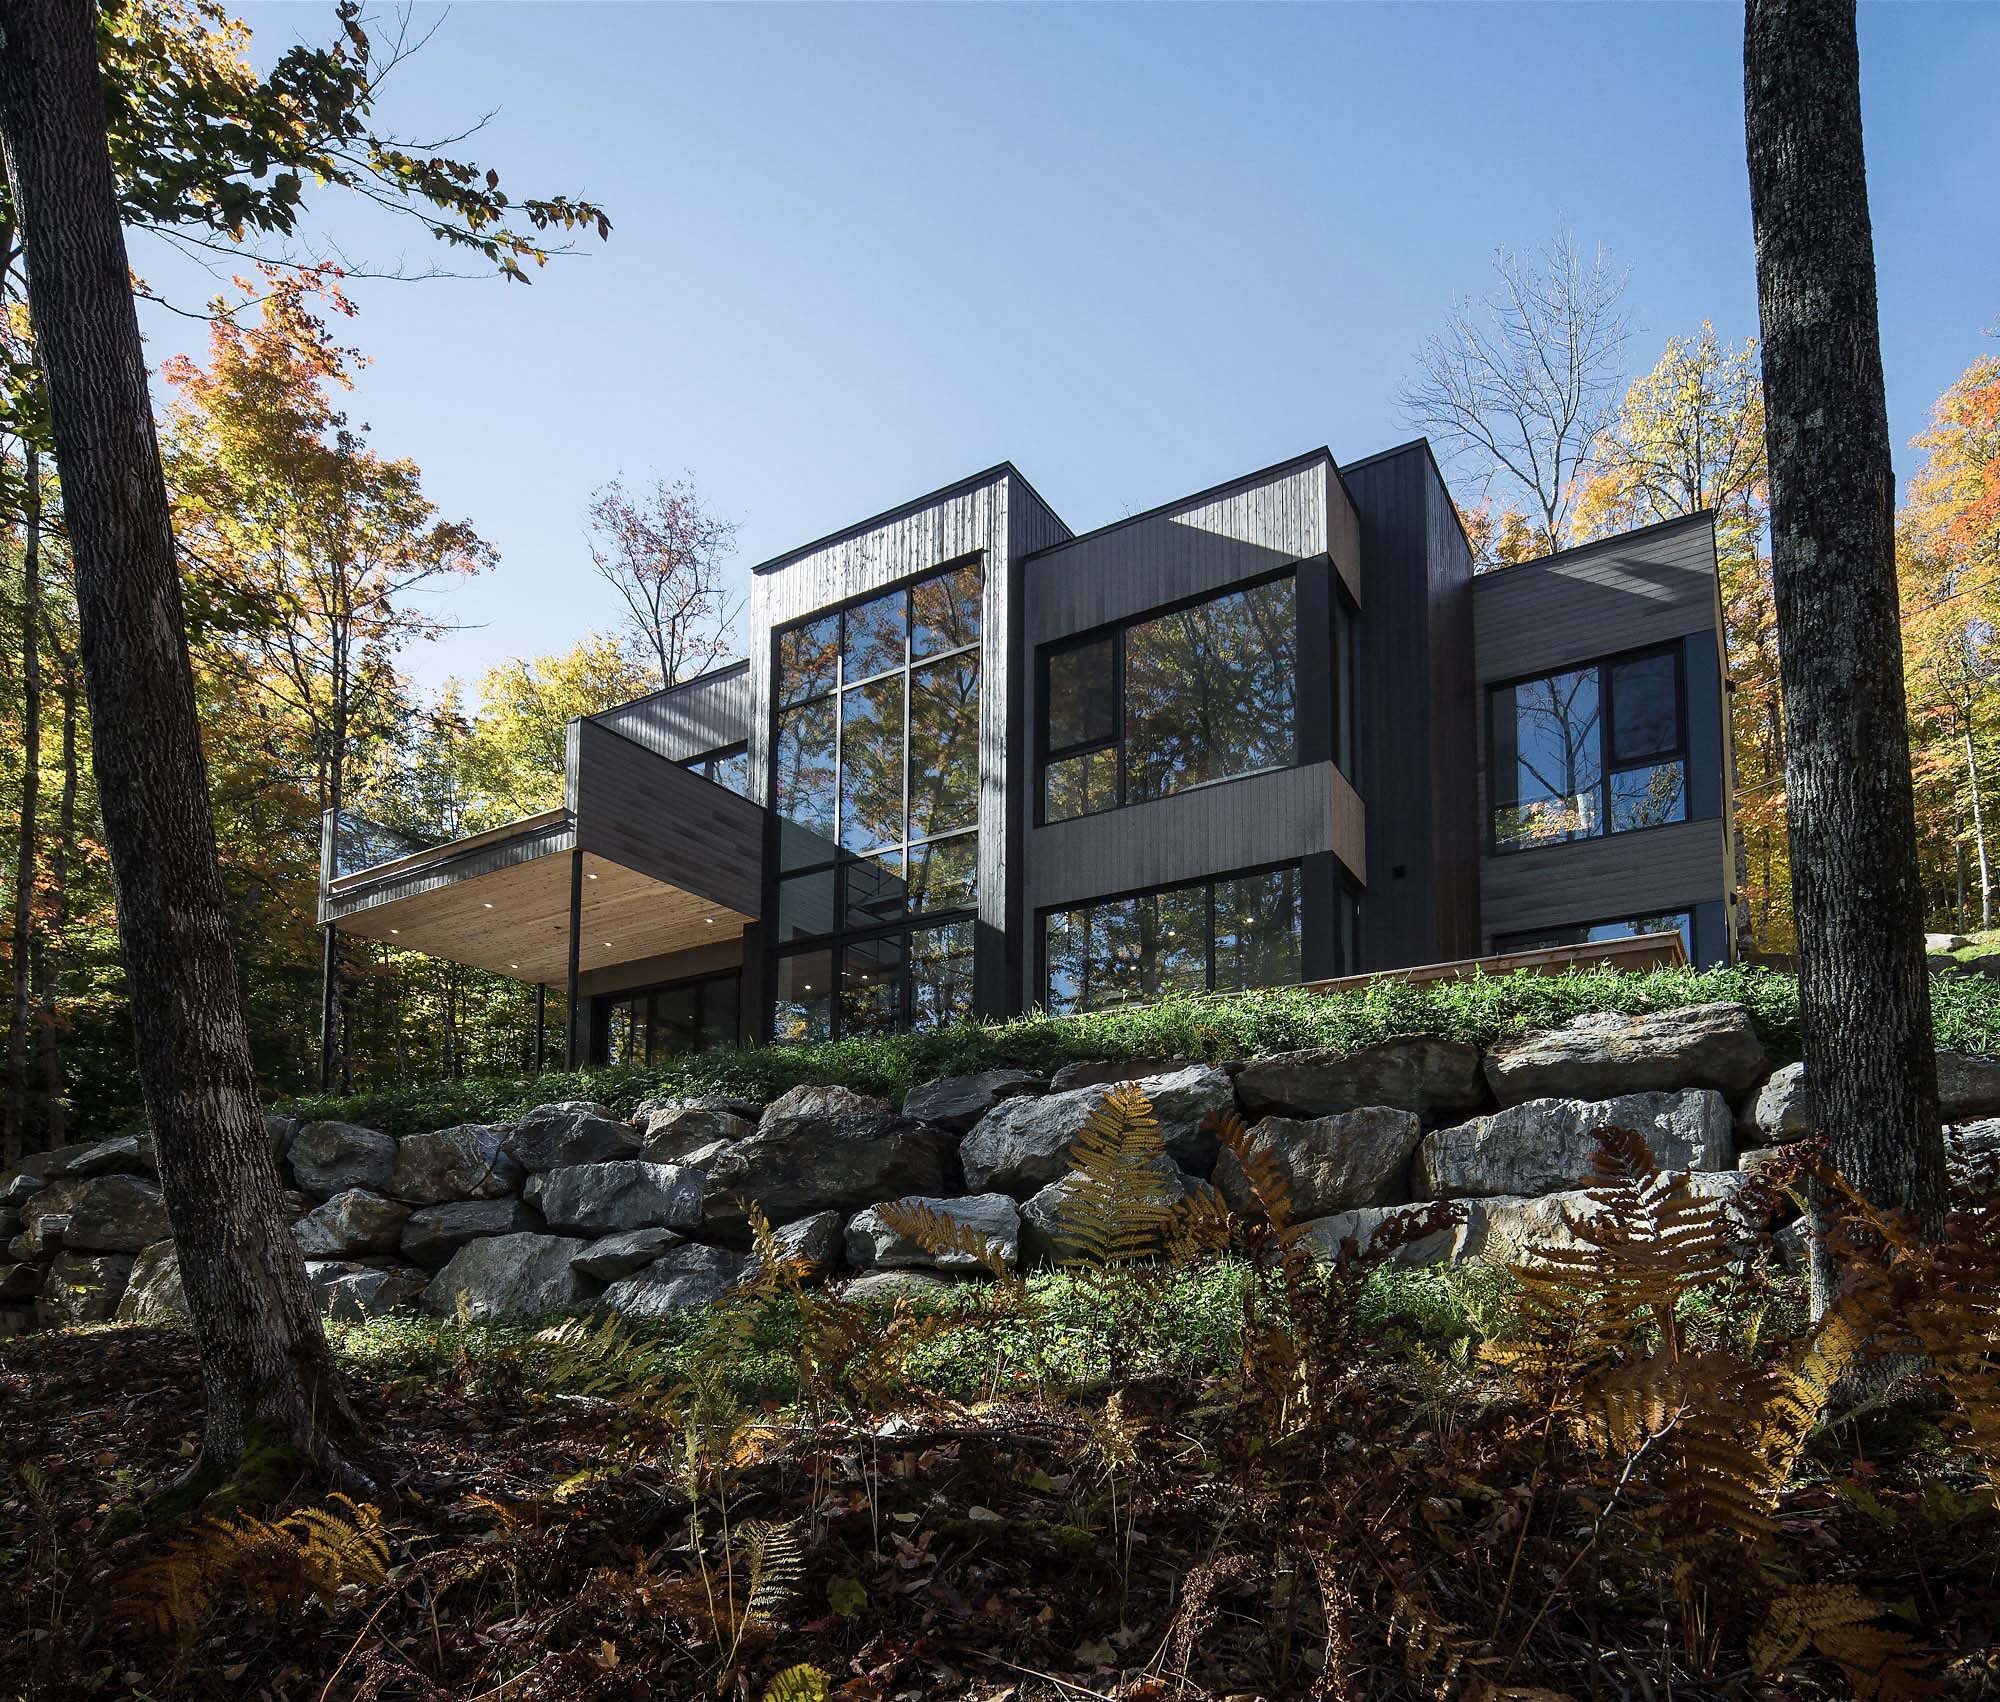 Modern home with ipe siding. Real stone boulders. Flat roof design. - Gambrick